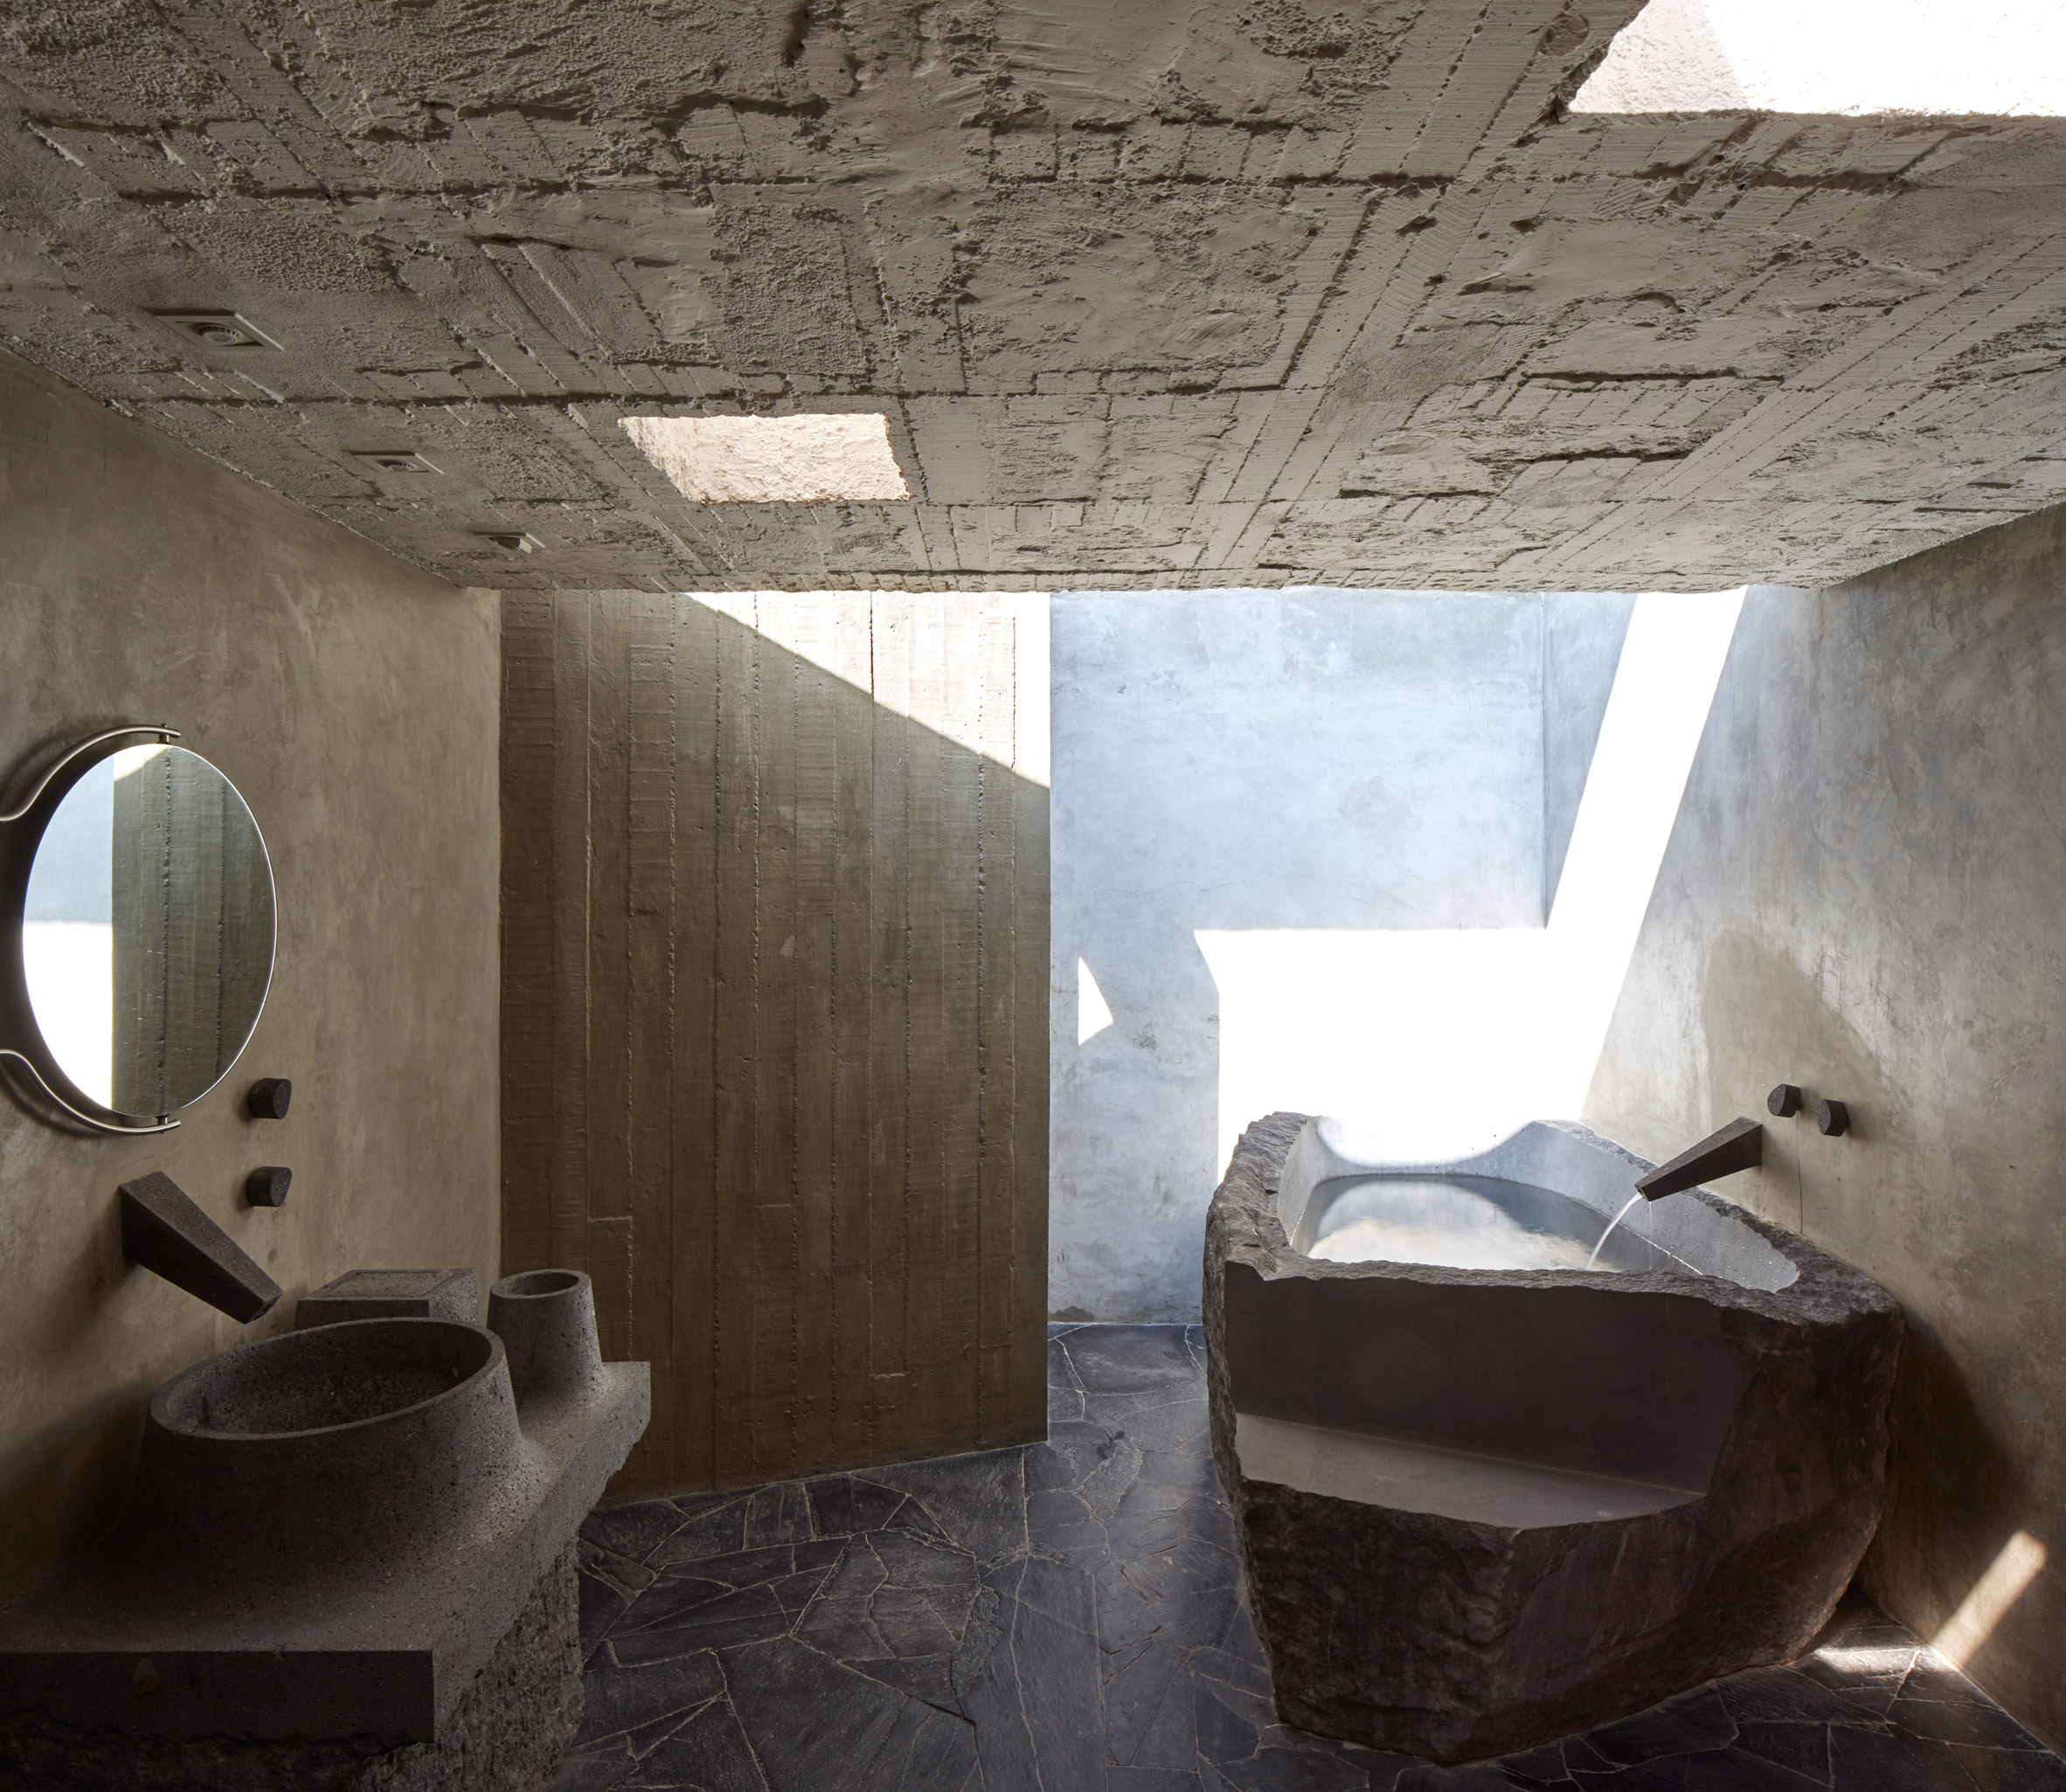 concrete bathroom in Reyes House by Pedro Reyes and Carla Fernandez